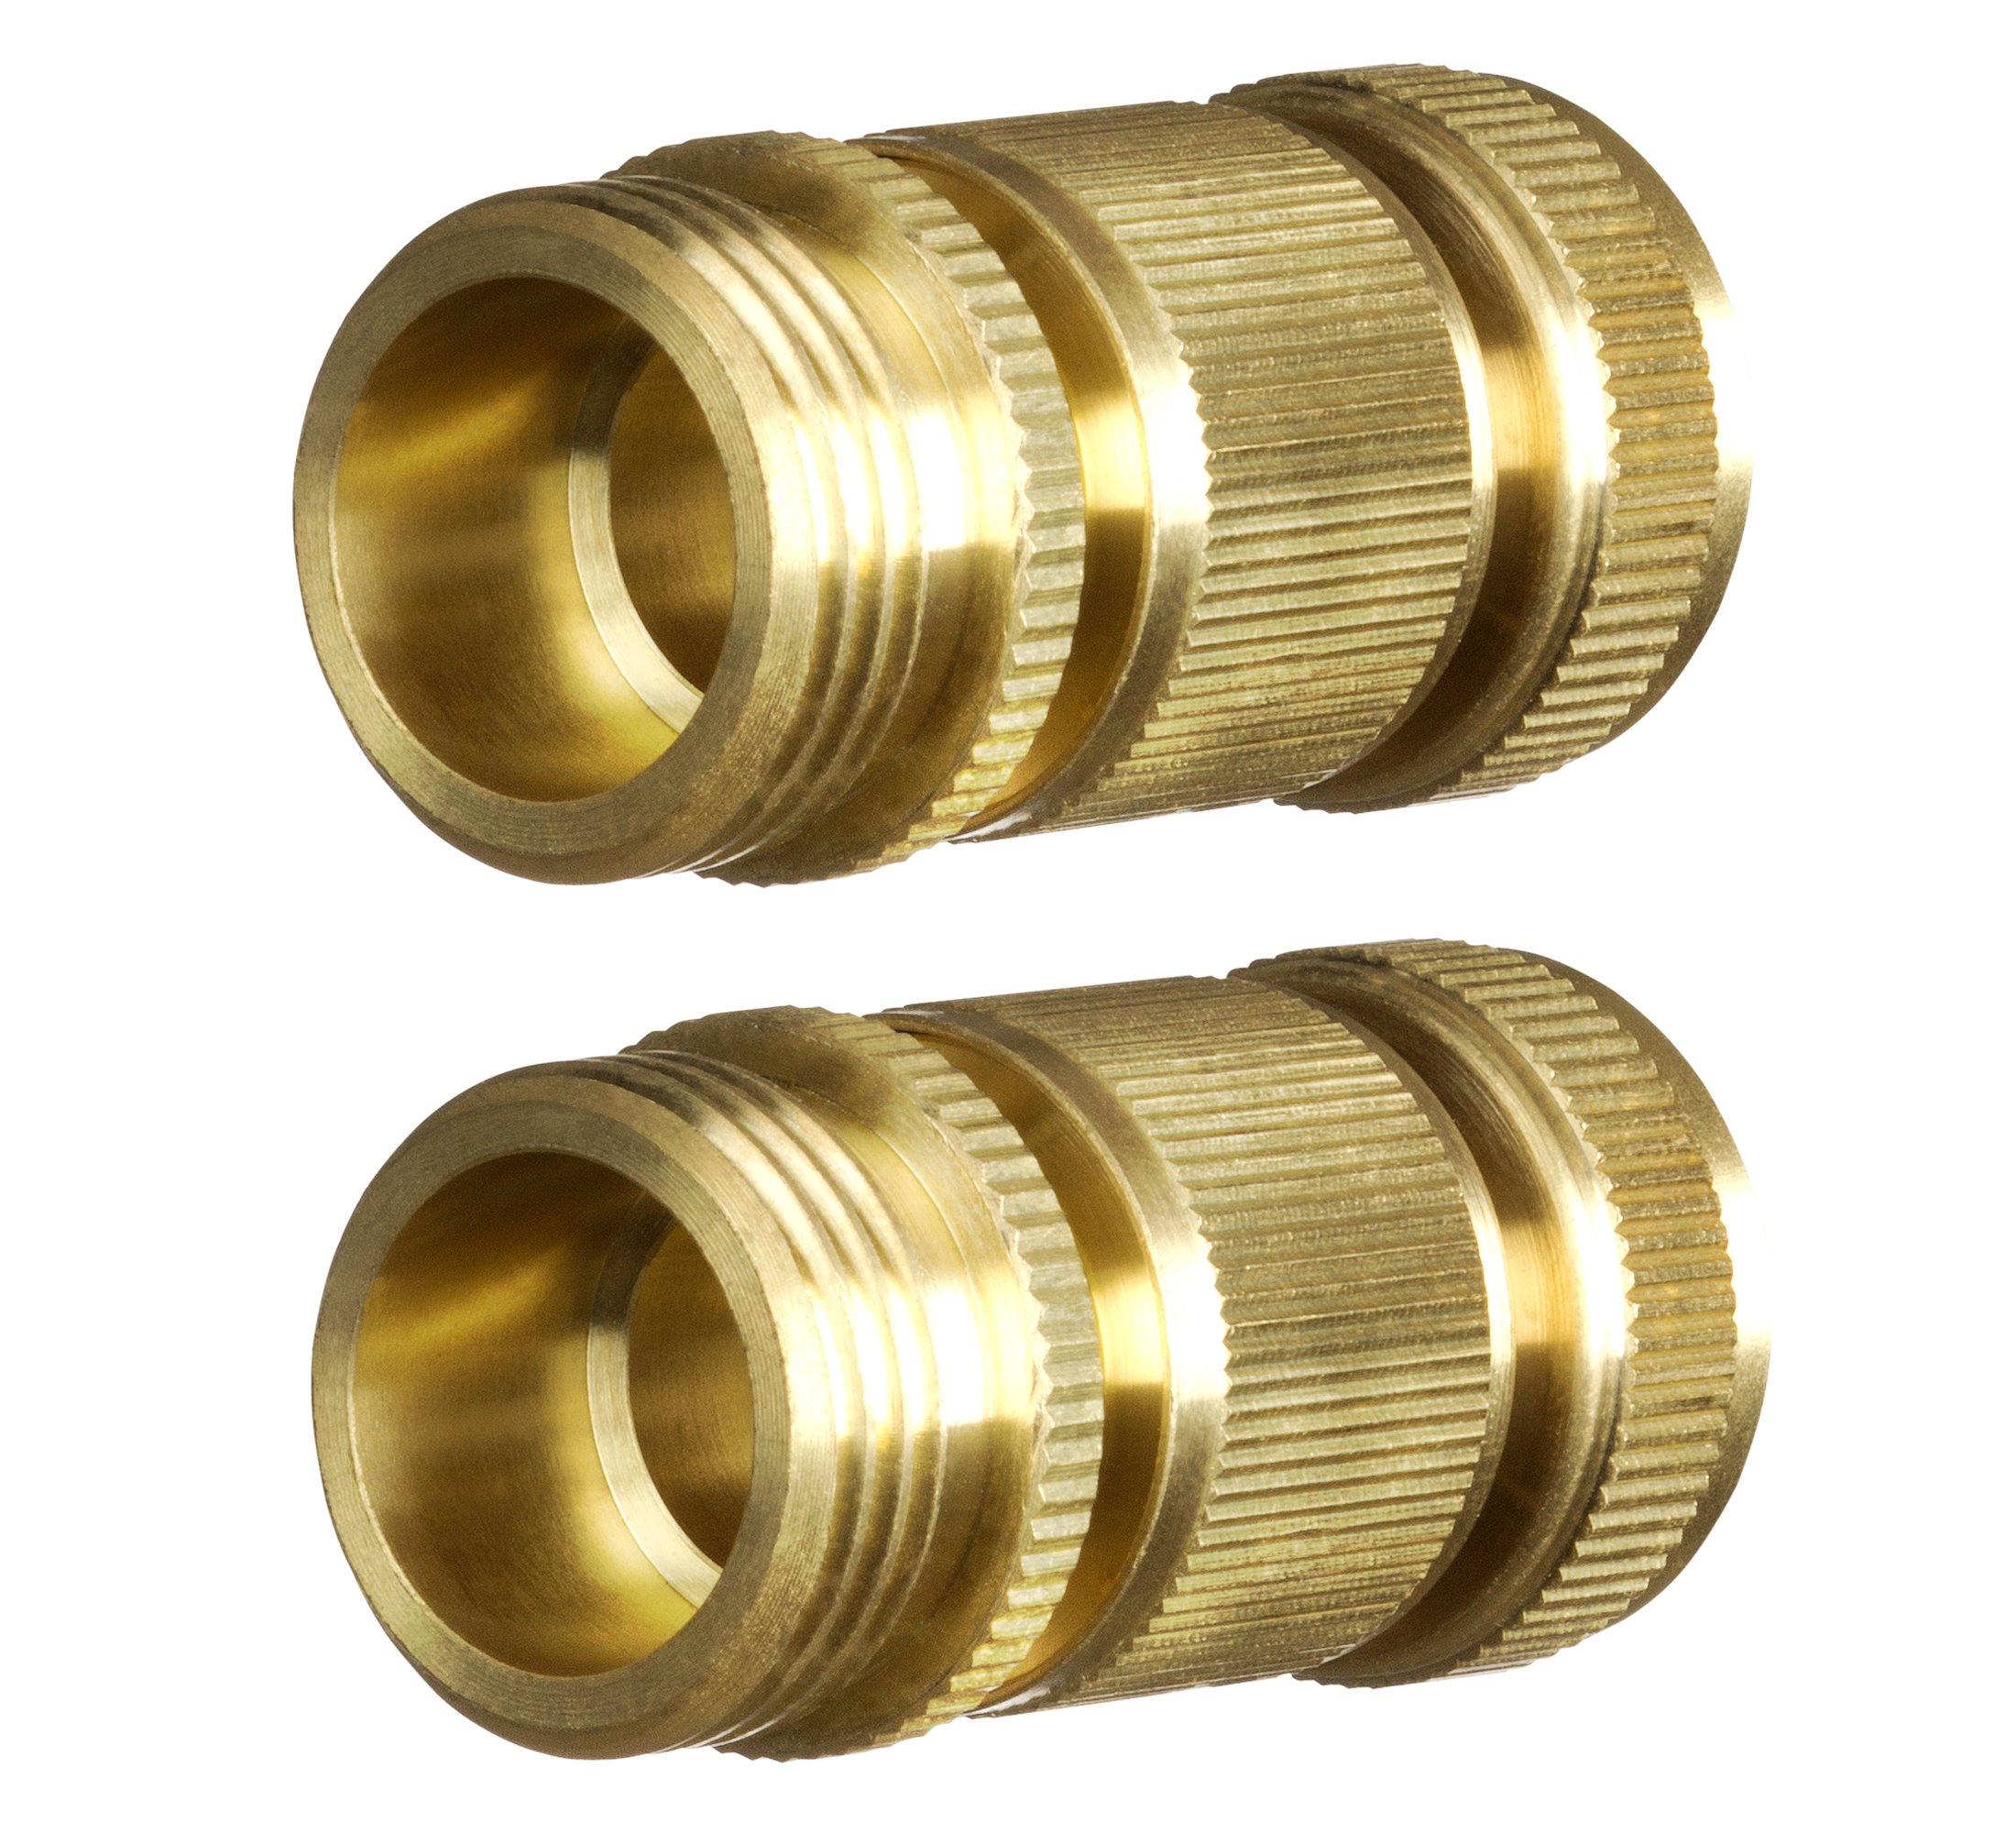 New Garden Hose Quick Connector. ¾ inch GHT Brass Easy Connect Fitting 4-Piece Set Male and Female by GORILLA EASY CONNECT (Image #2)